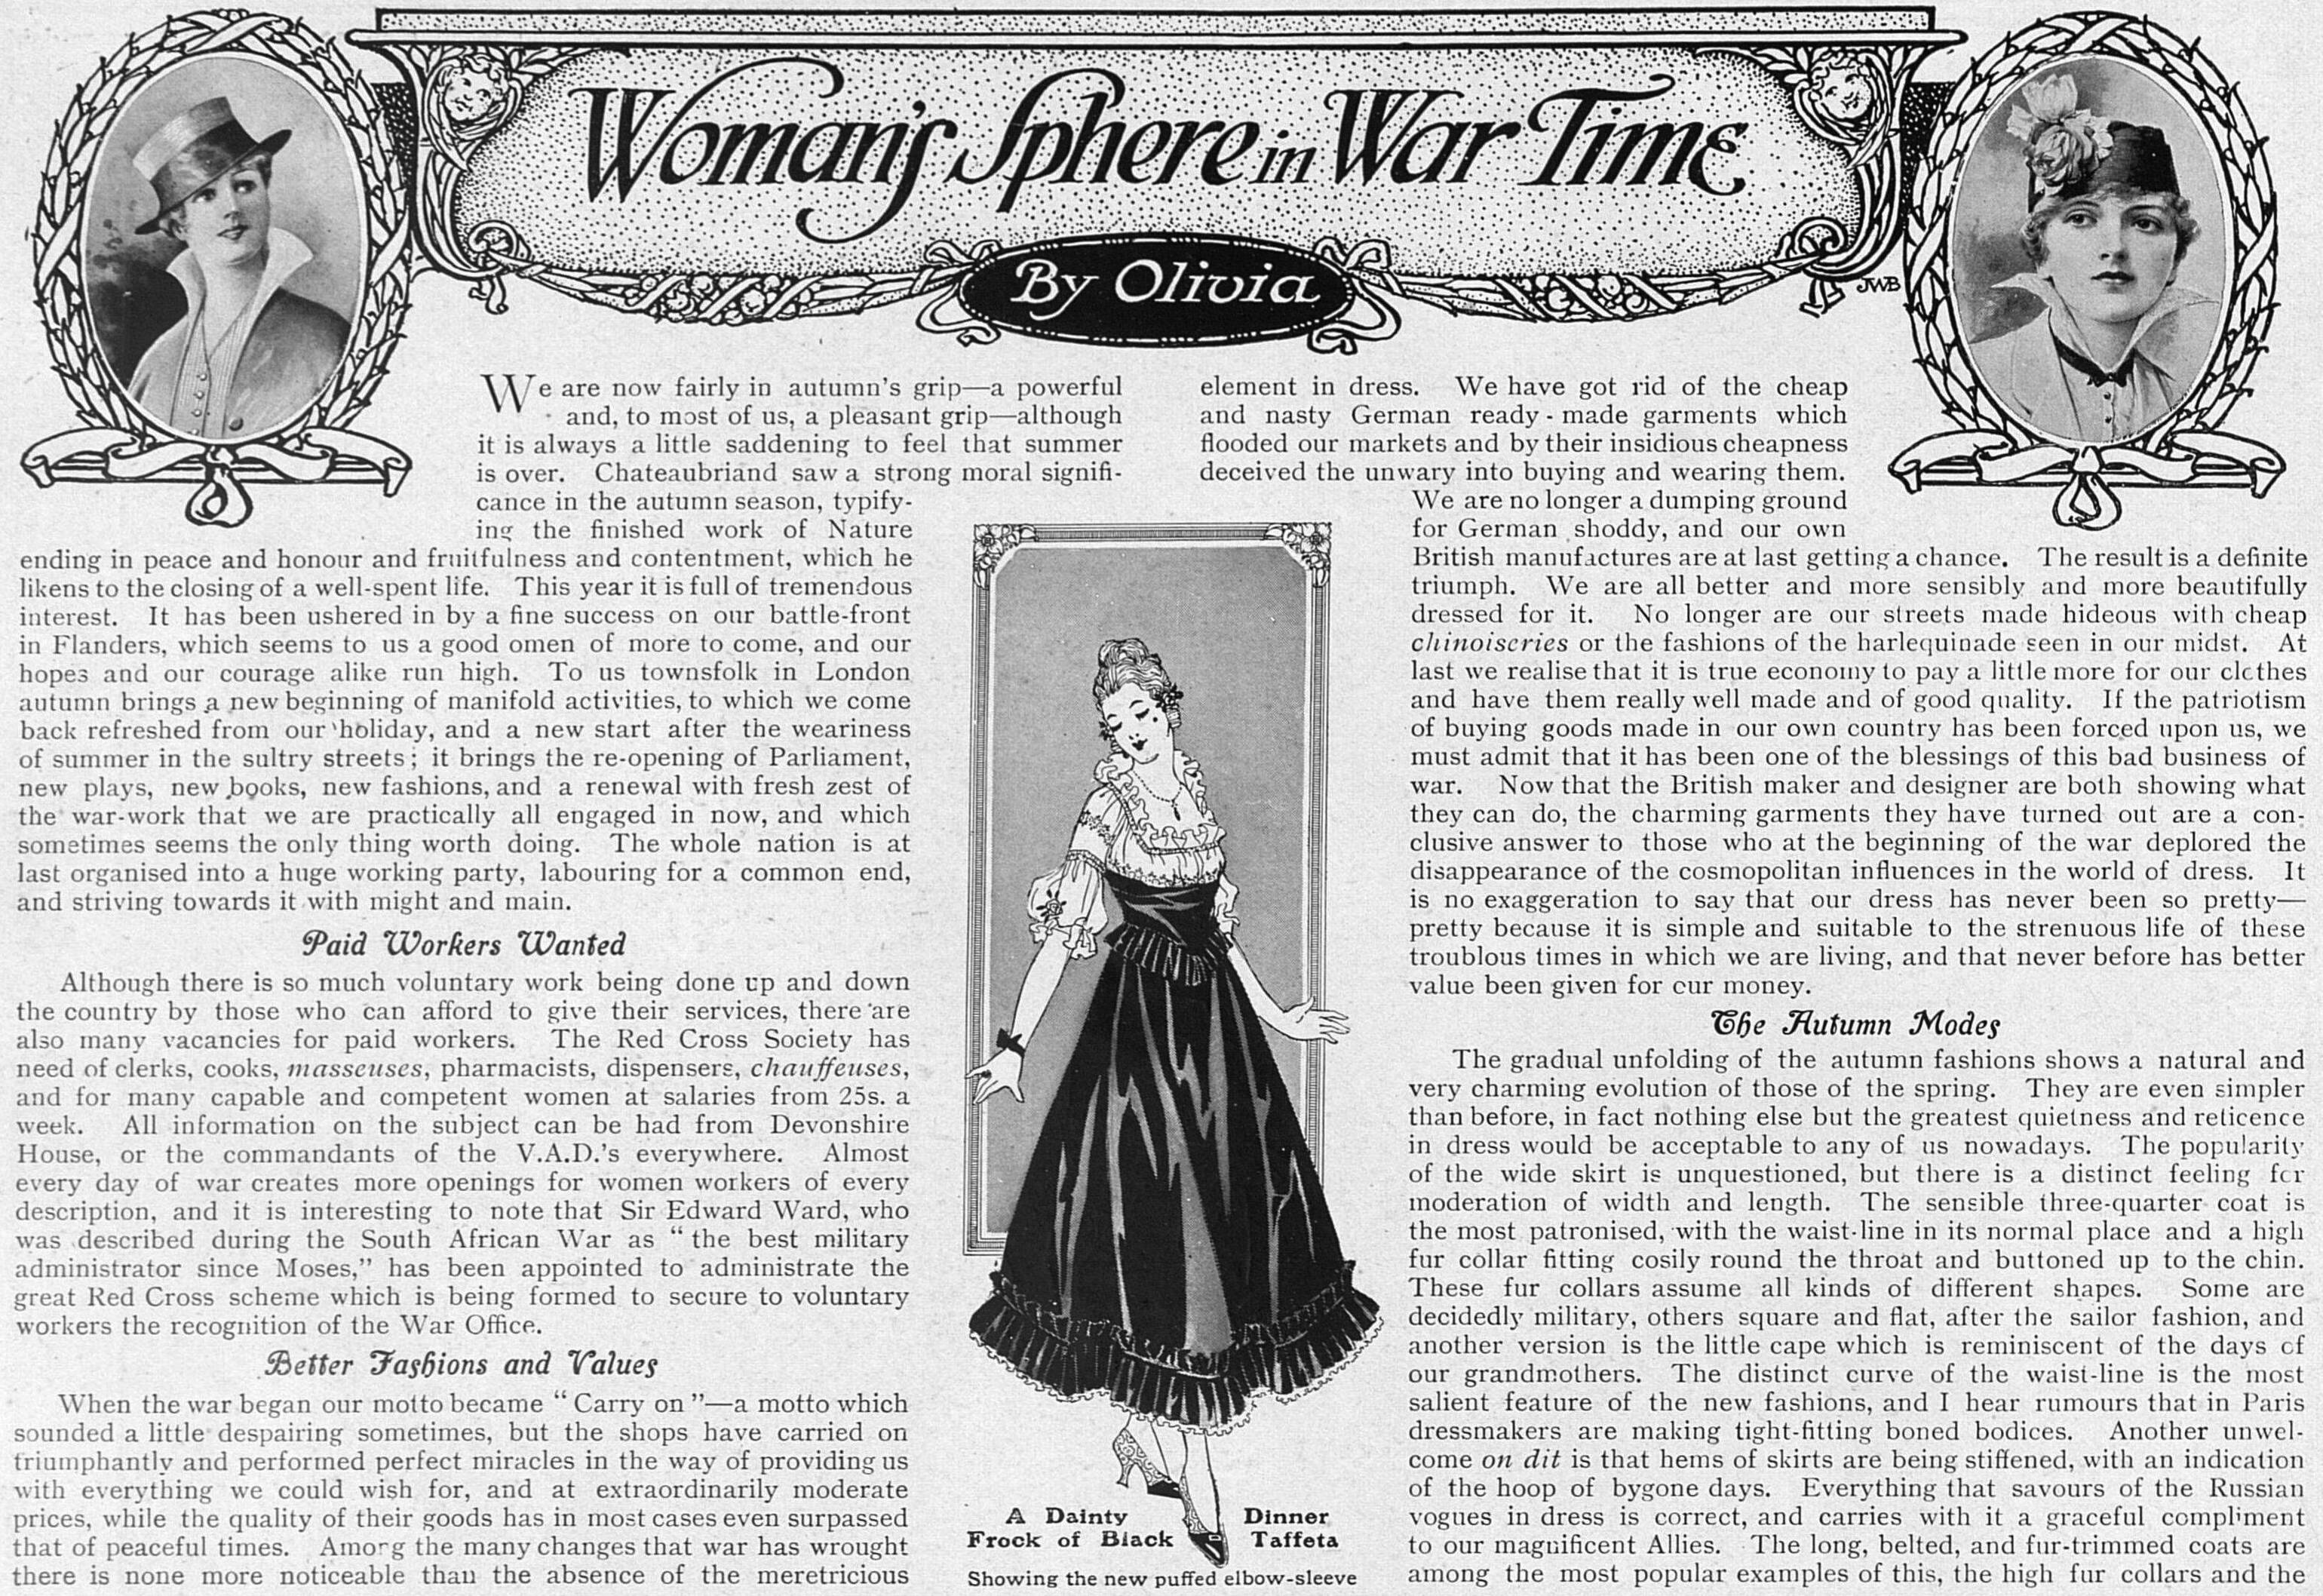 WomansSphereInWarTime_16Oct1915